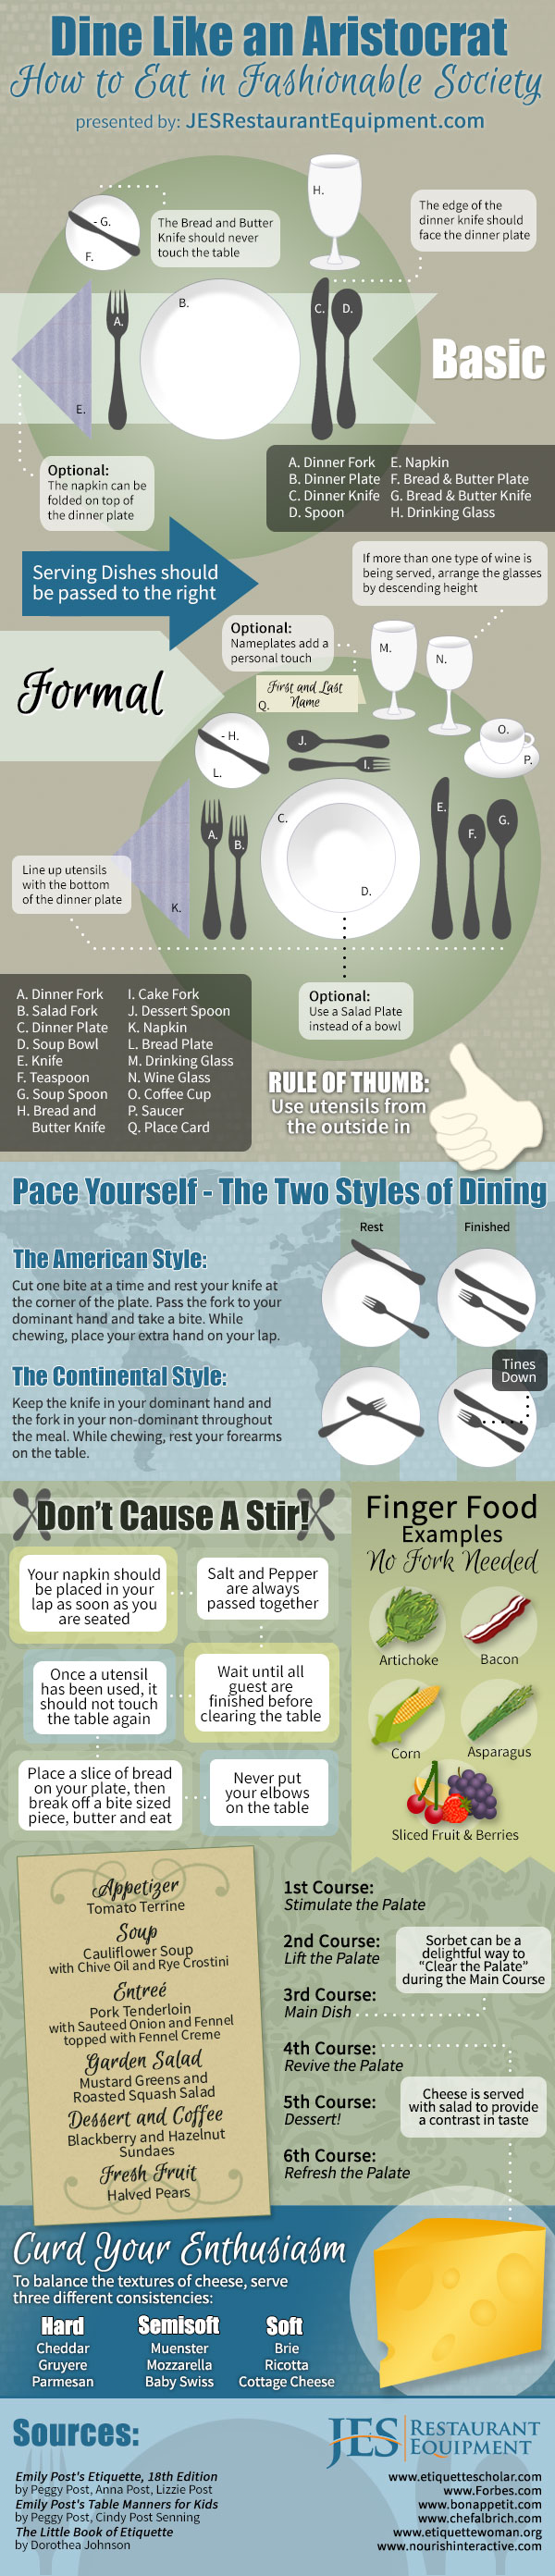 formal dining etiquette rules in graphic form